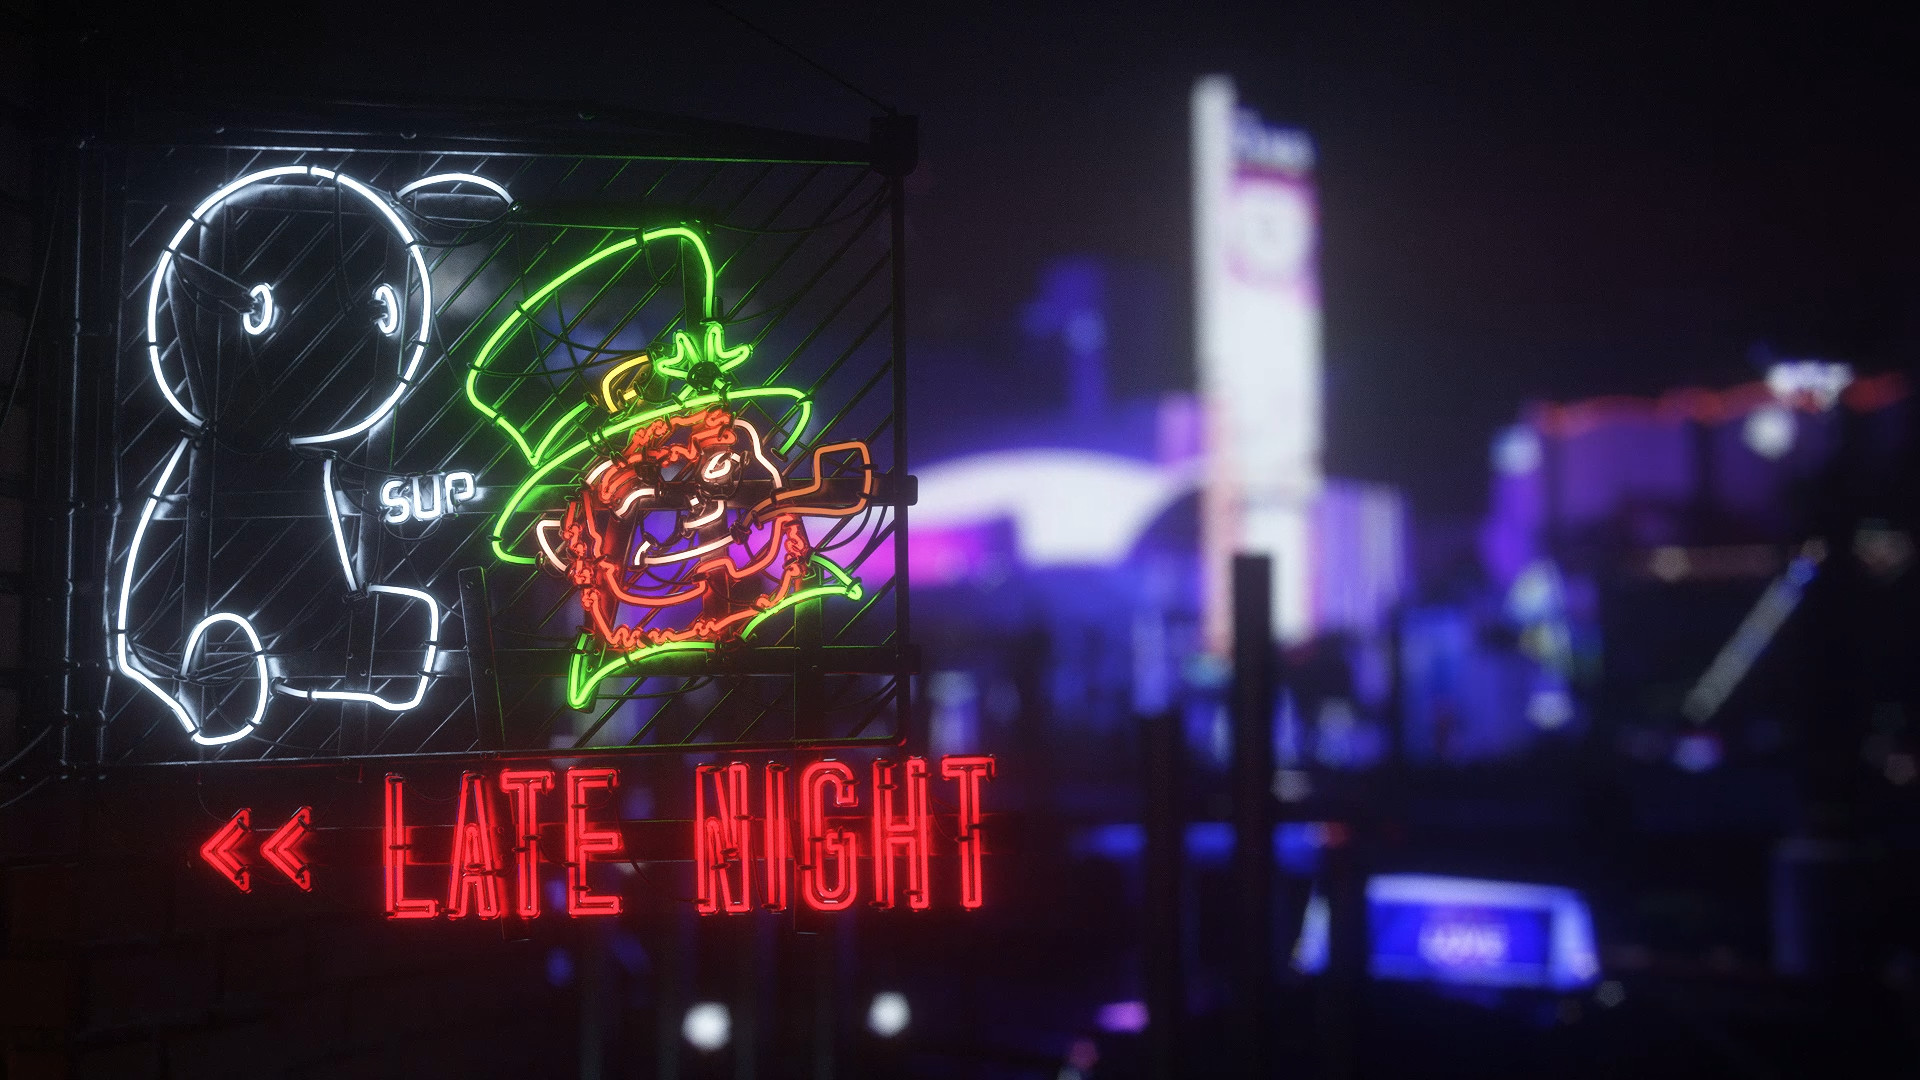 Late Night With Neon Idle Animation Wallpaper Engine